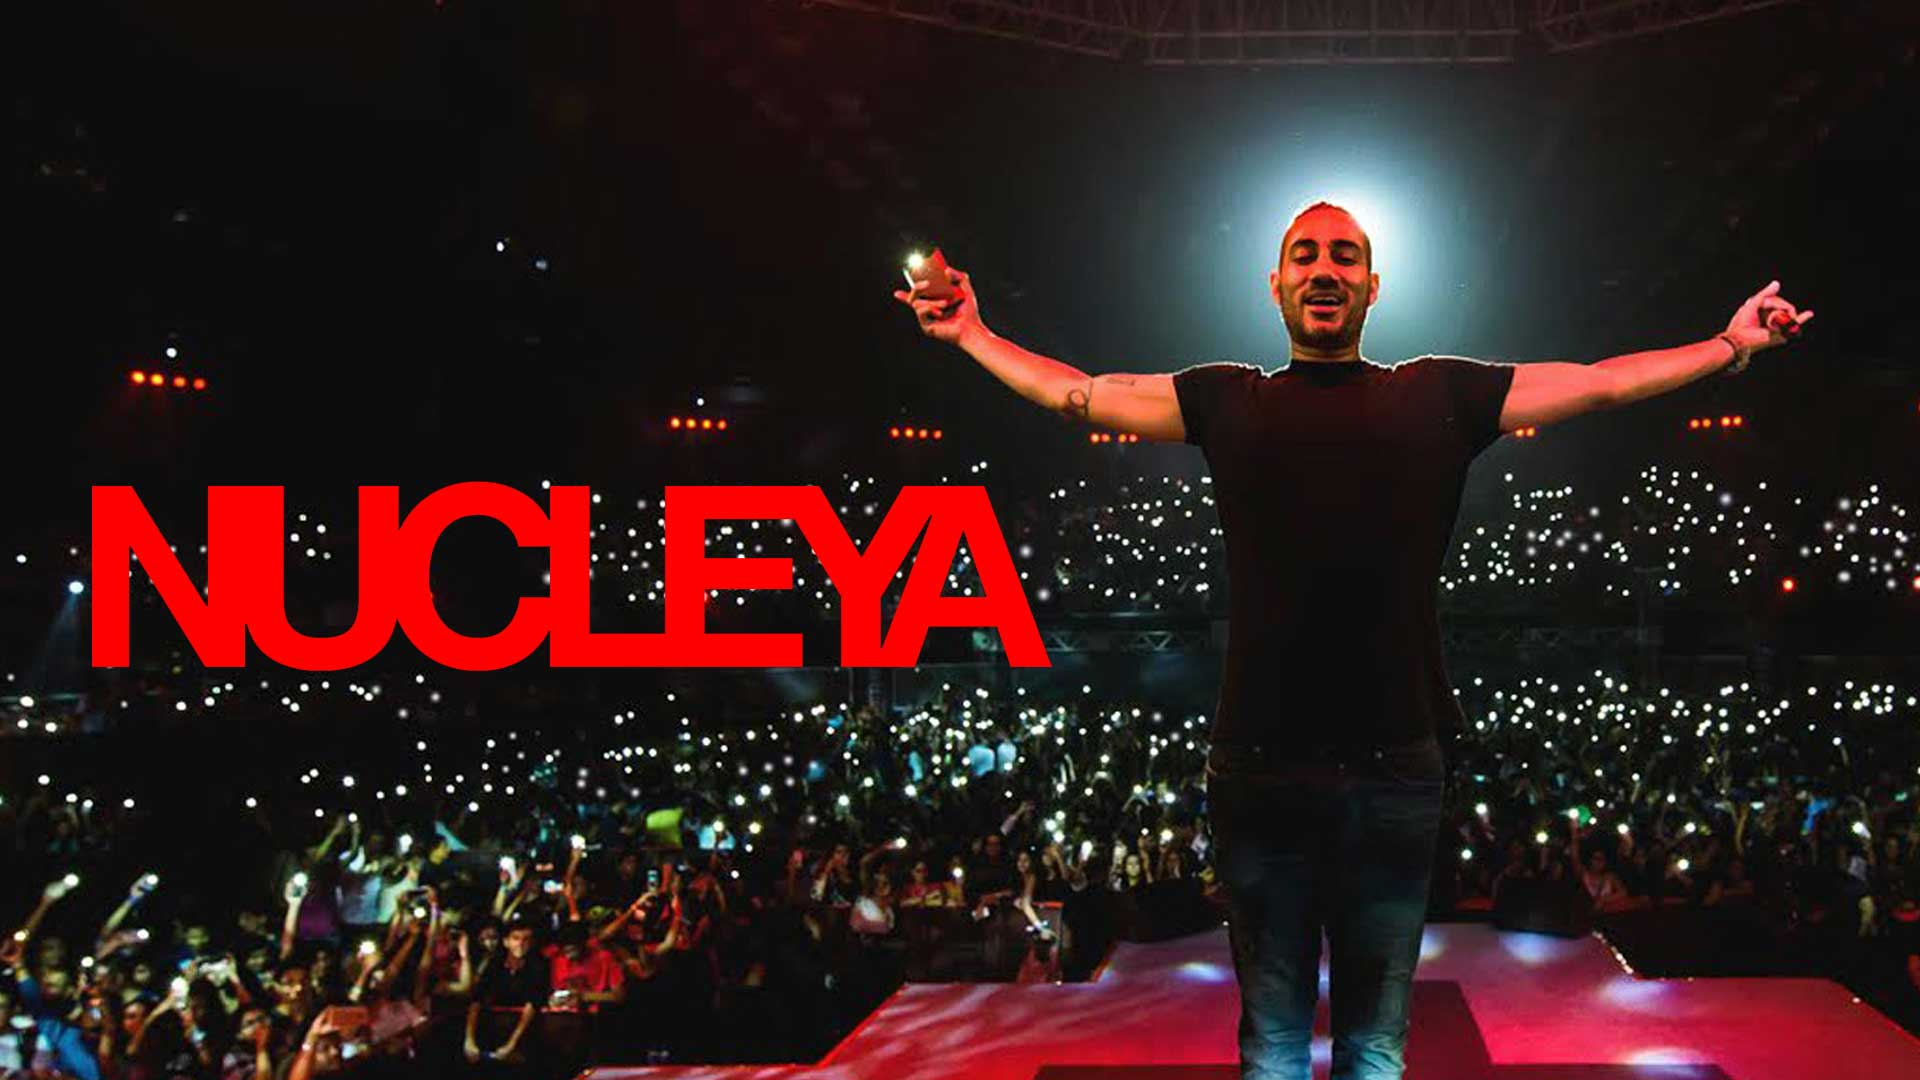 i-love-to-listen-to-folk-classical-music-dj-nucleya